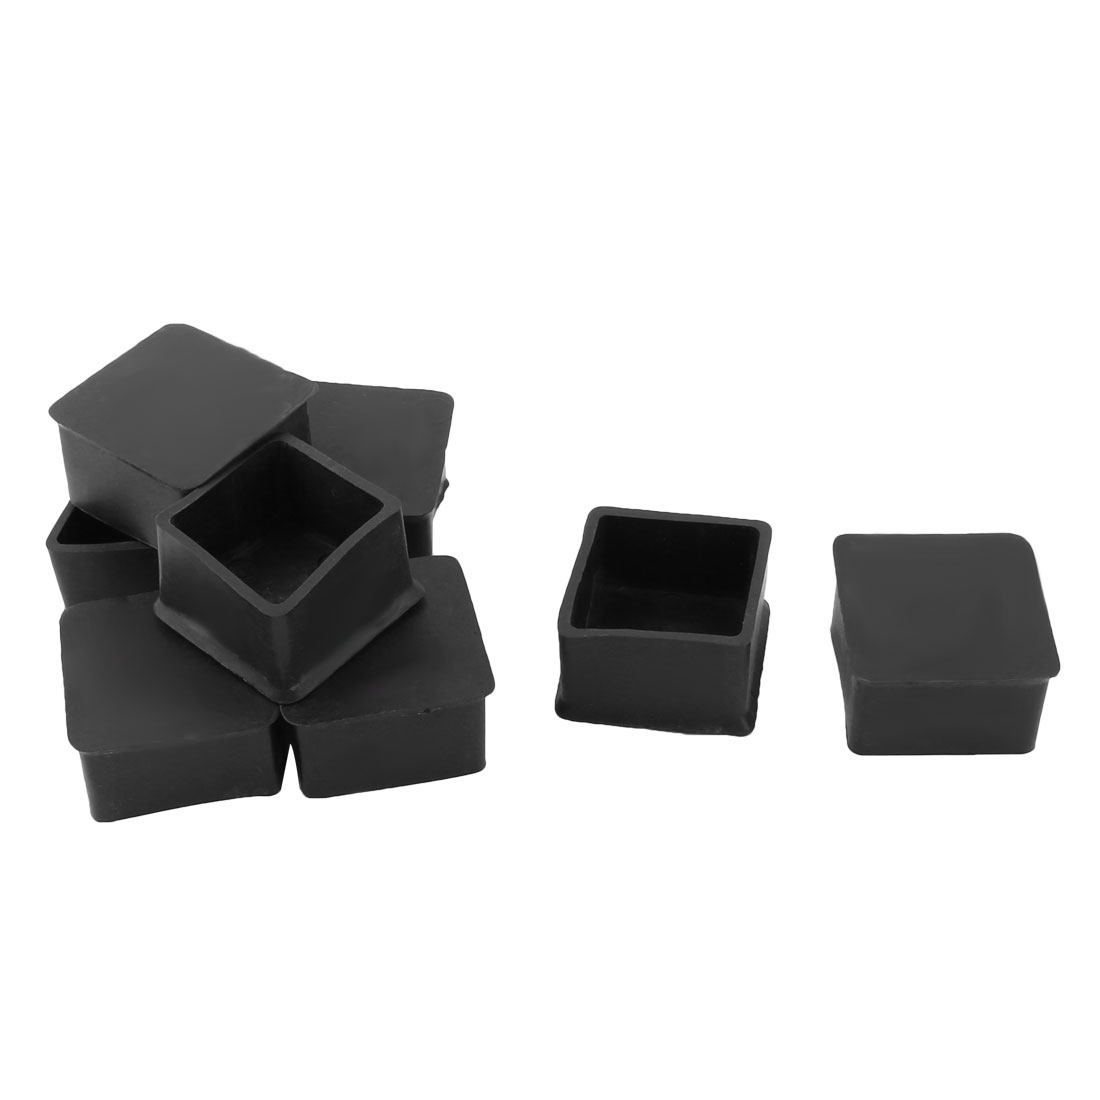 Household Furniture Rubber Square Shaped Chair Desk Leg Foot Cover Protector Pad Black 8pcs